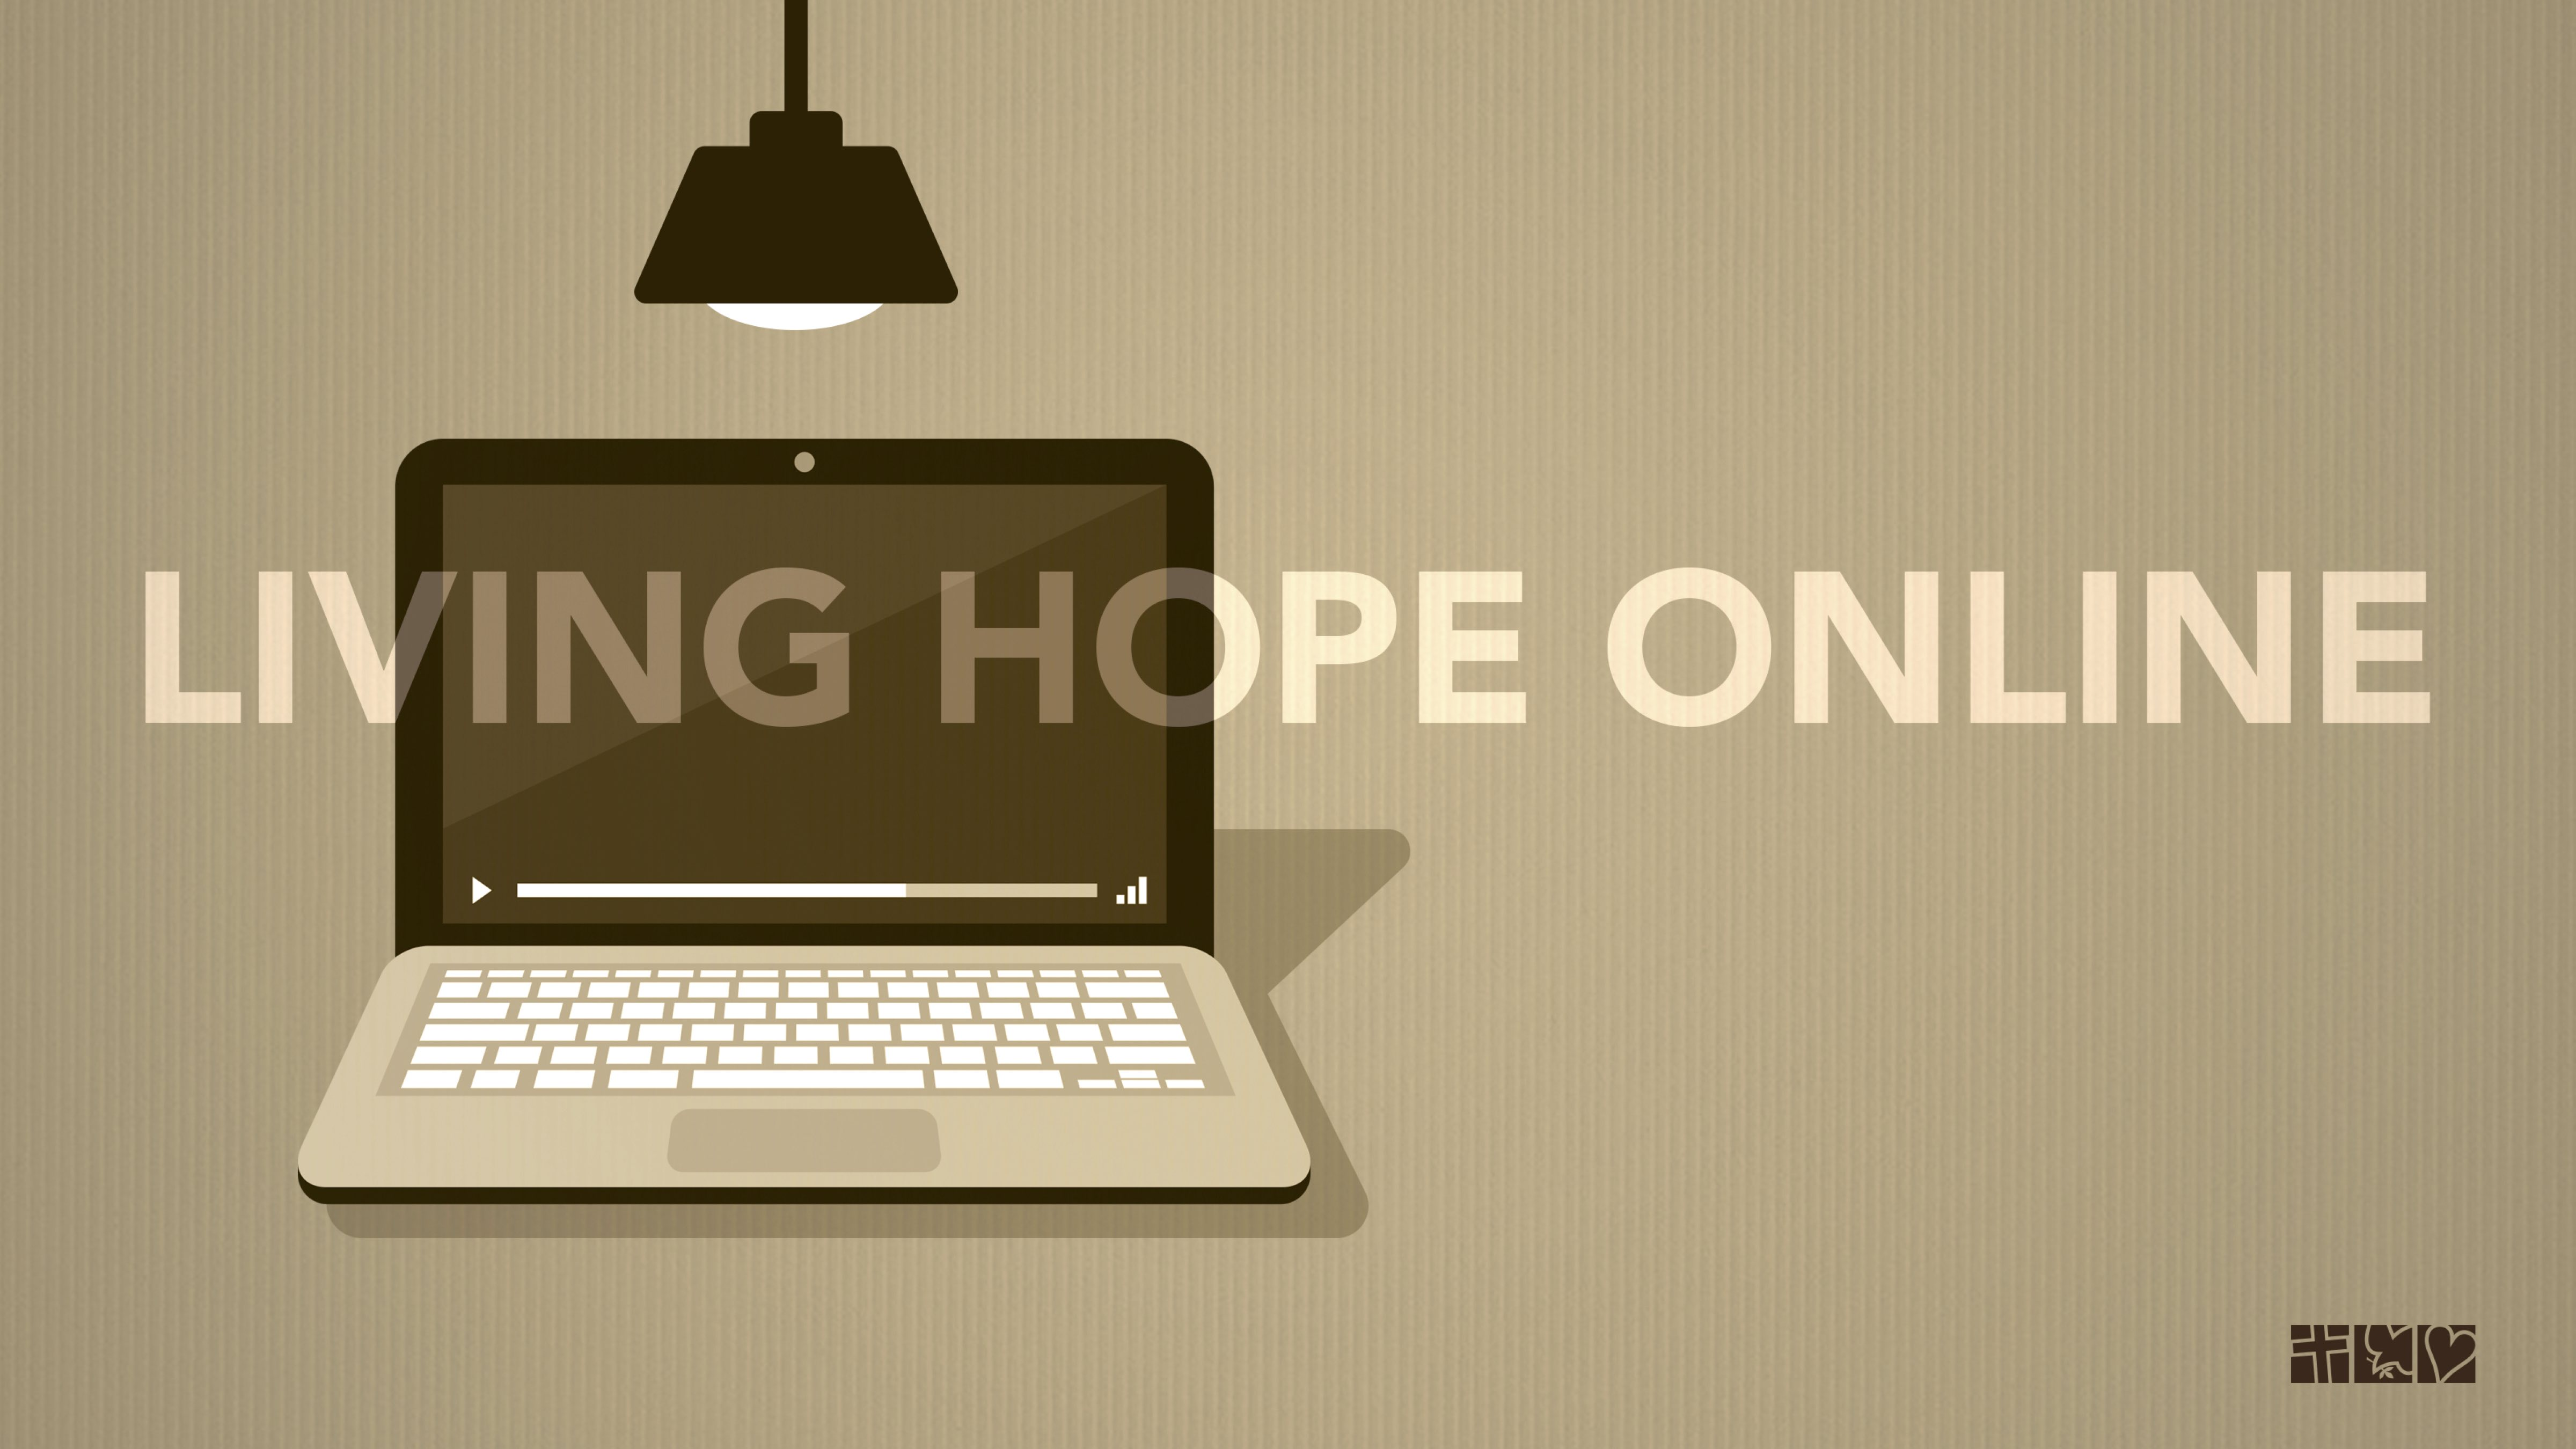 Living Hope Online button